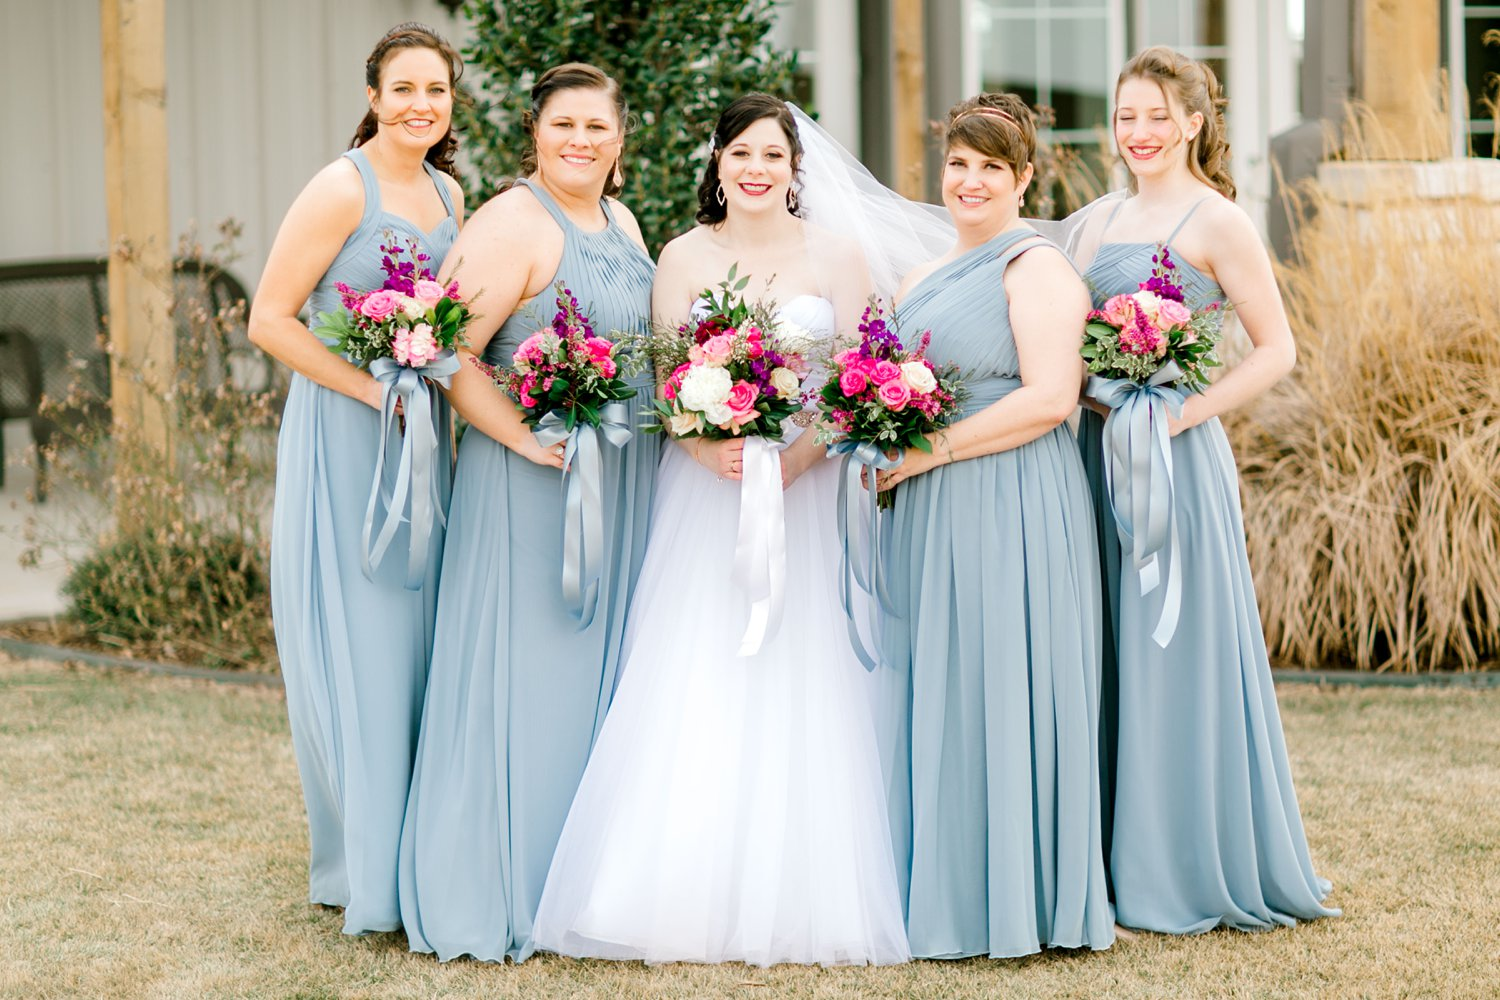 Autumn-Oaks-Events-Morgan-Andy-Lane-Wedding-Lubbock-Photography__0051.jpg